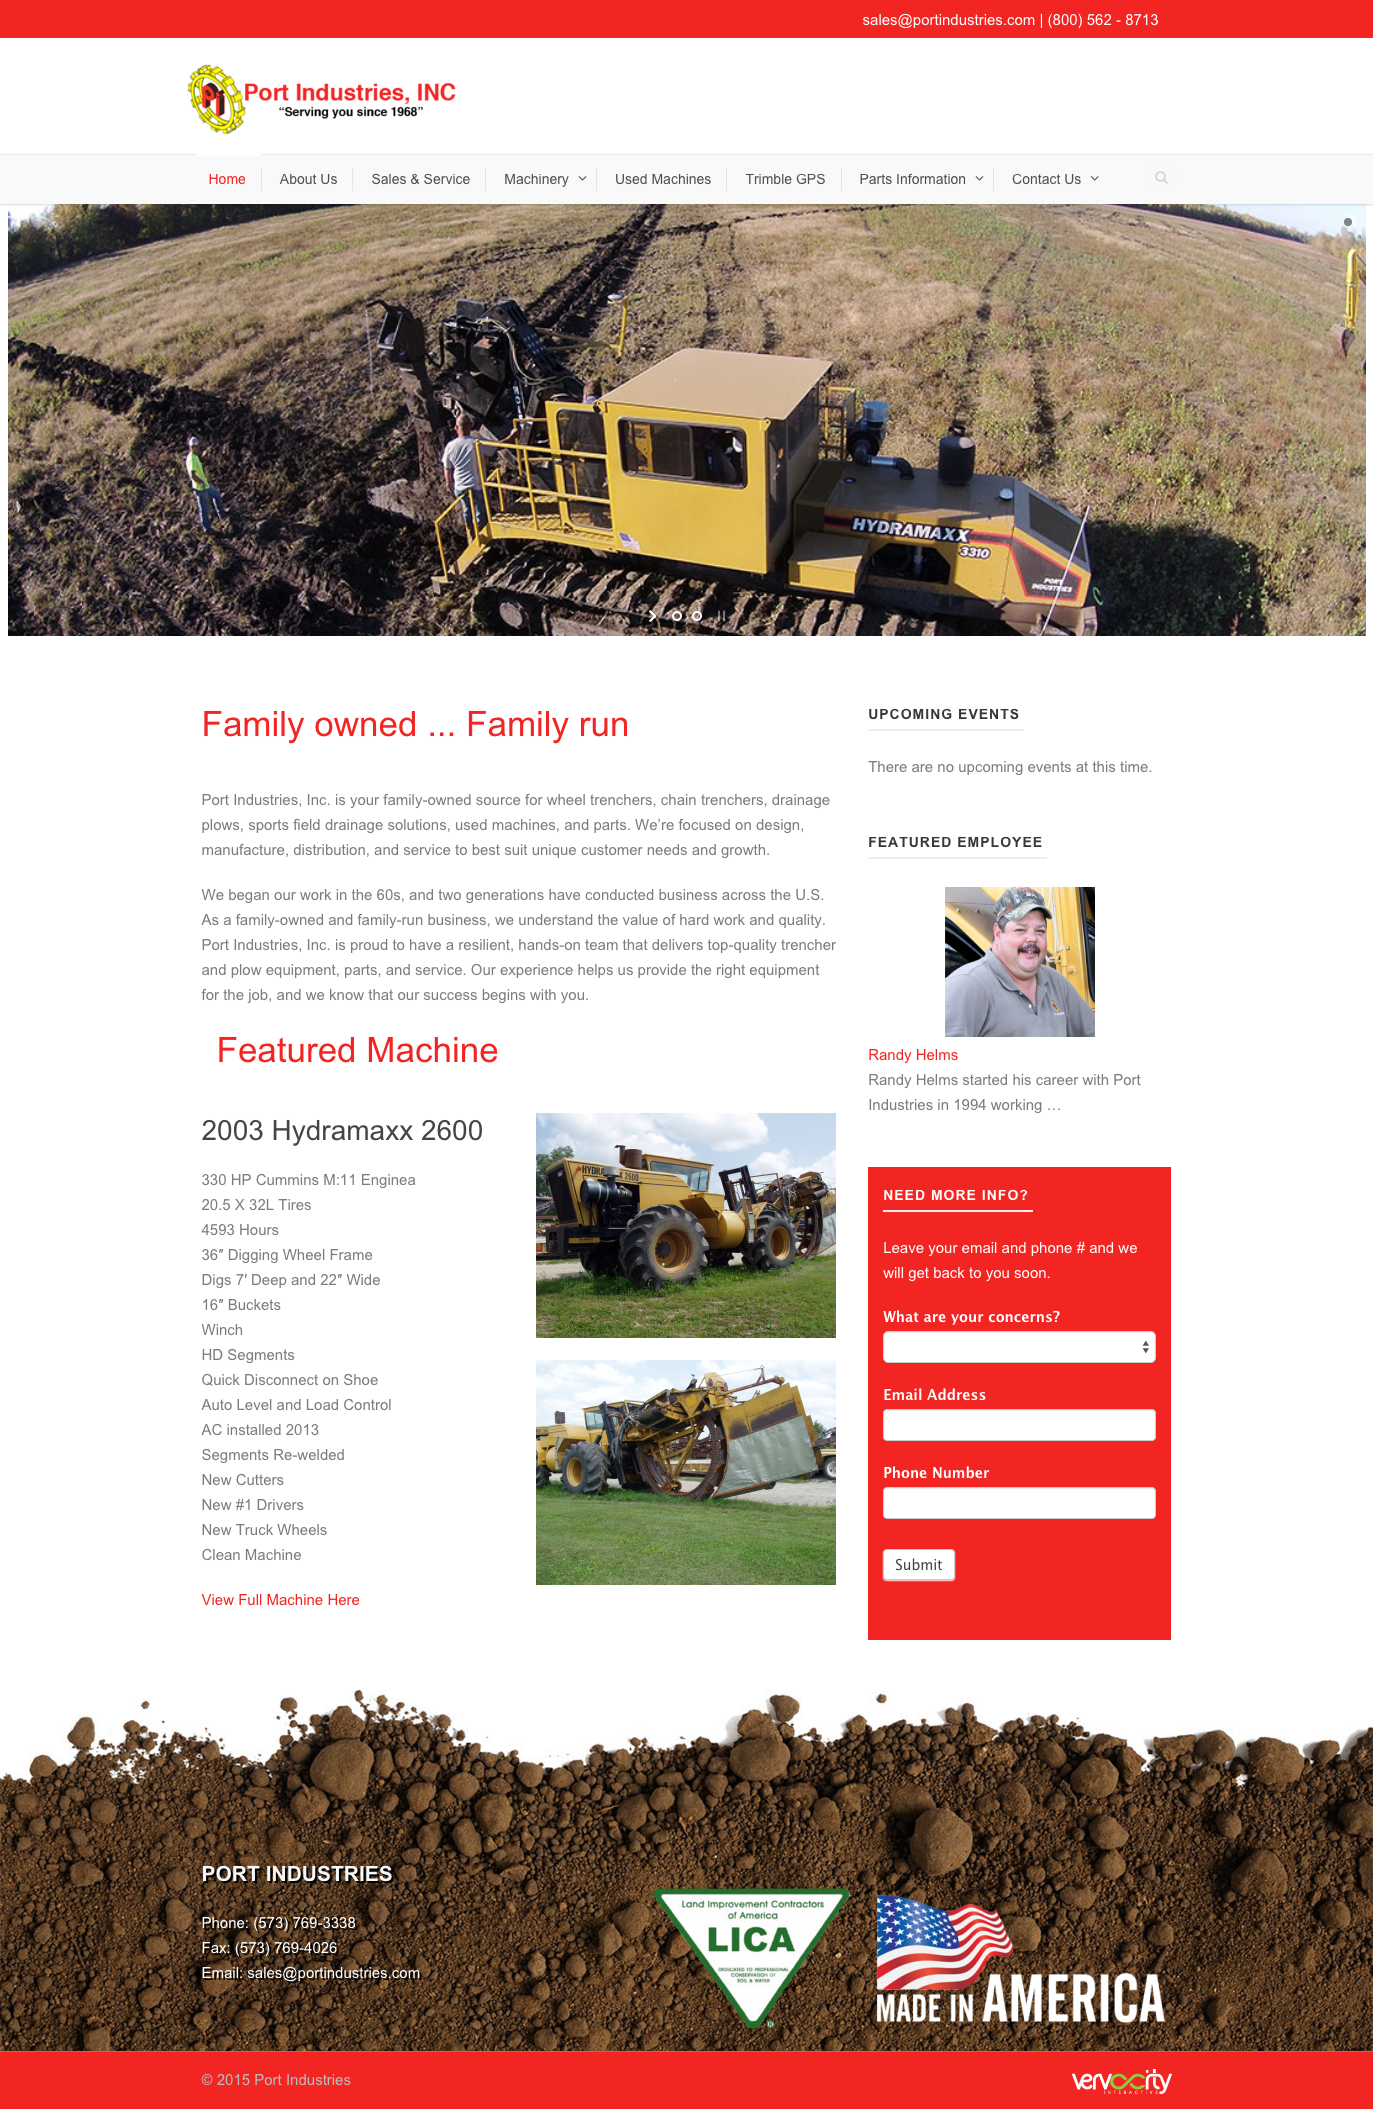 We recently launched the new Port Industries website at http ...